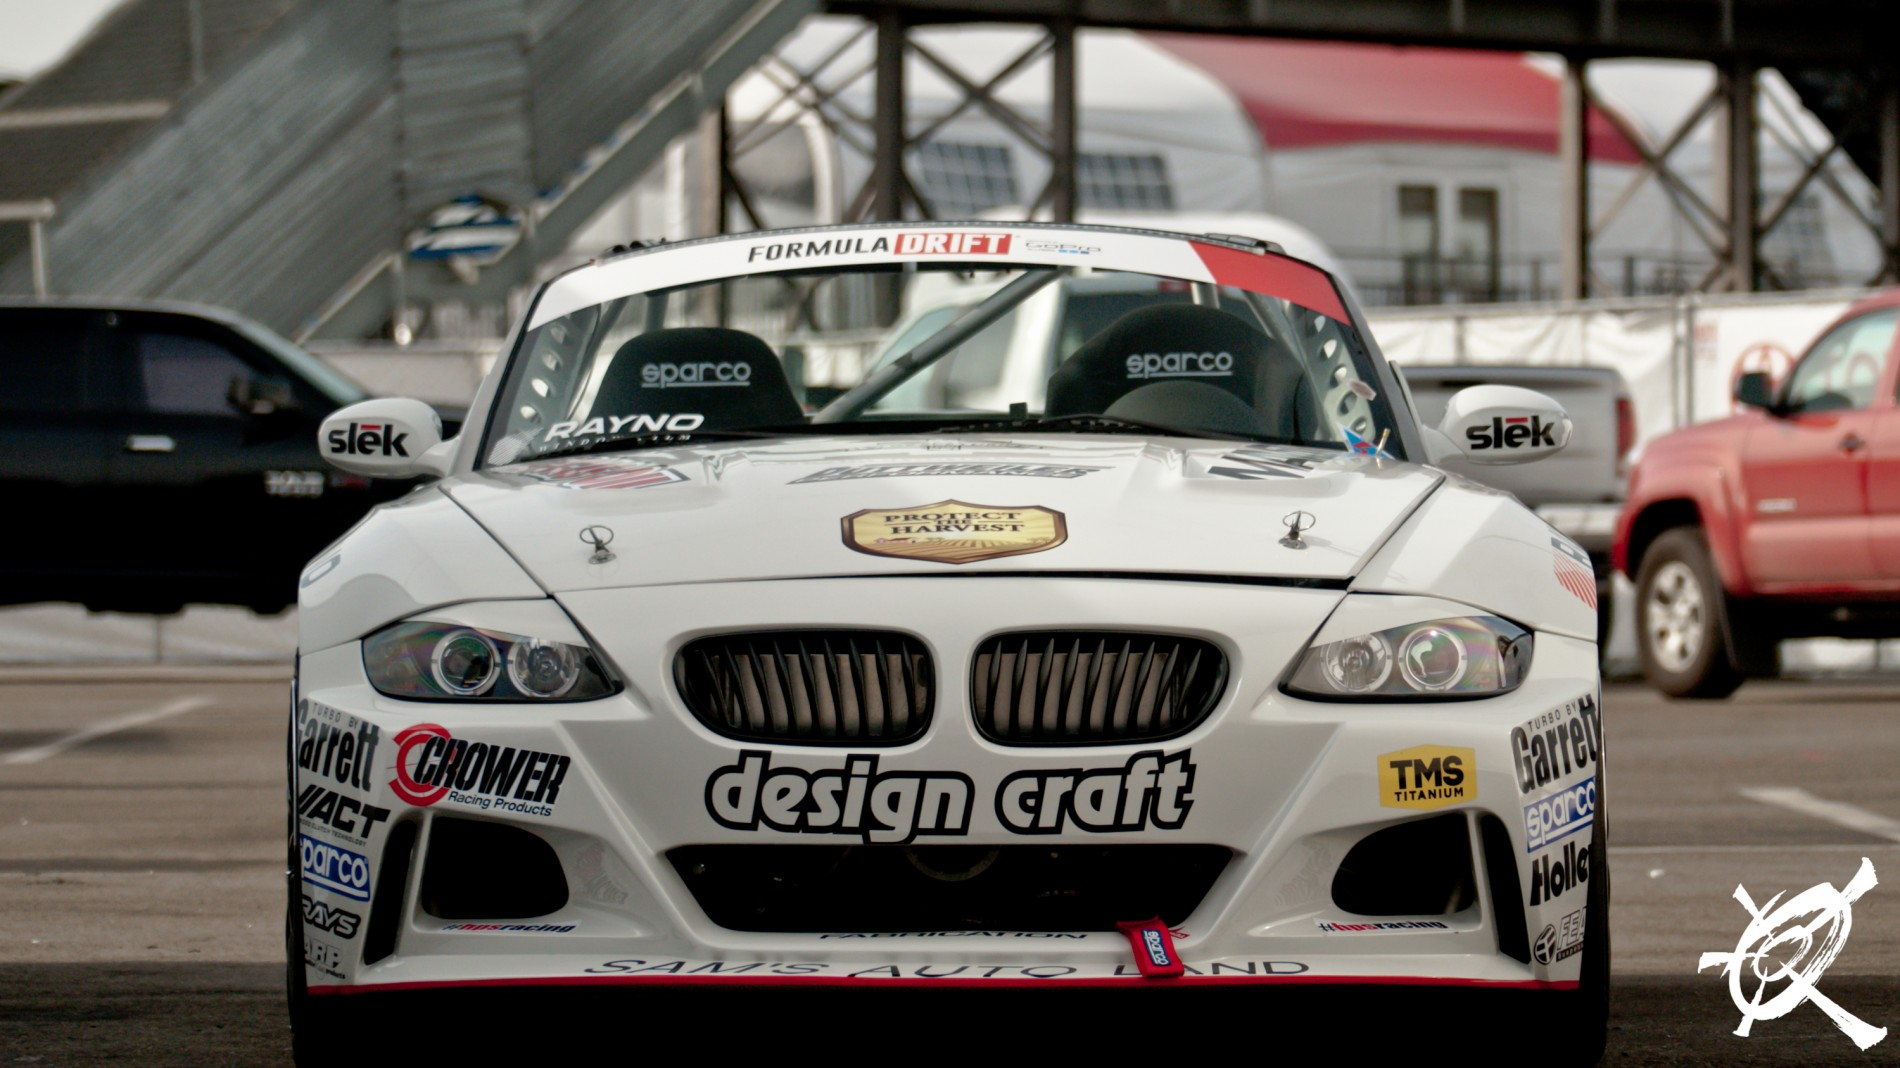 Joon Maeng did not qualify but his Z4 was still looking mean